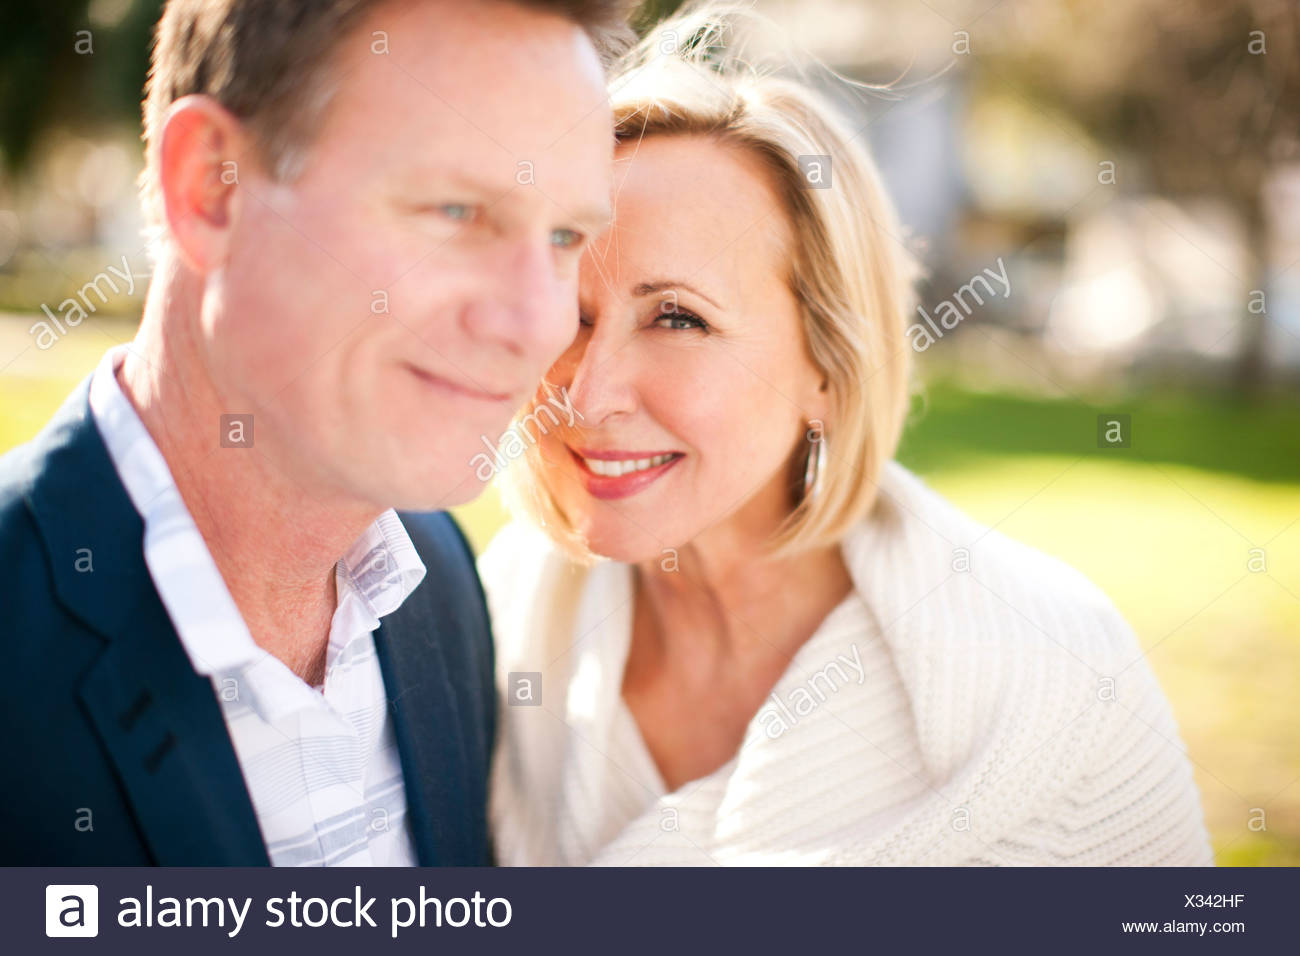 Loving heterosexual couple in park - Stock Image